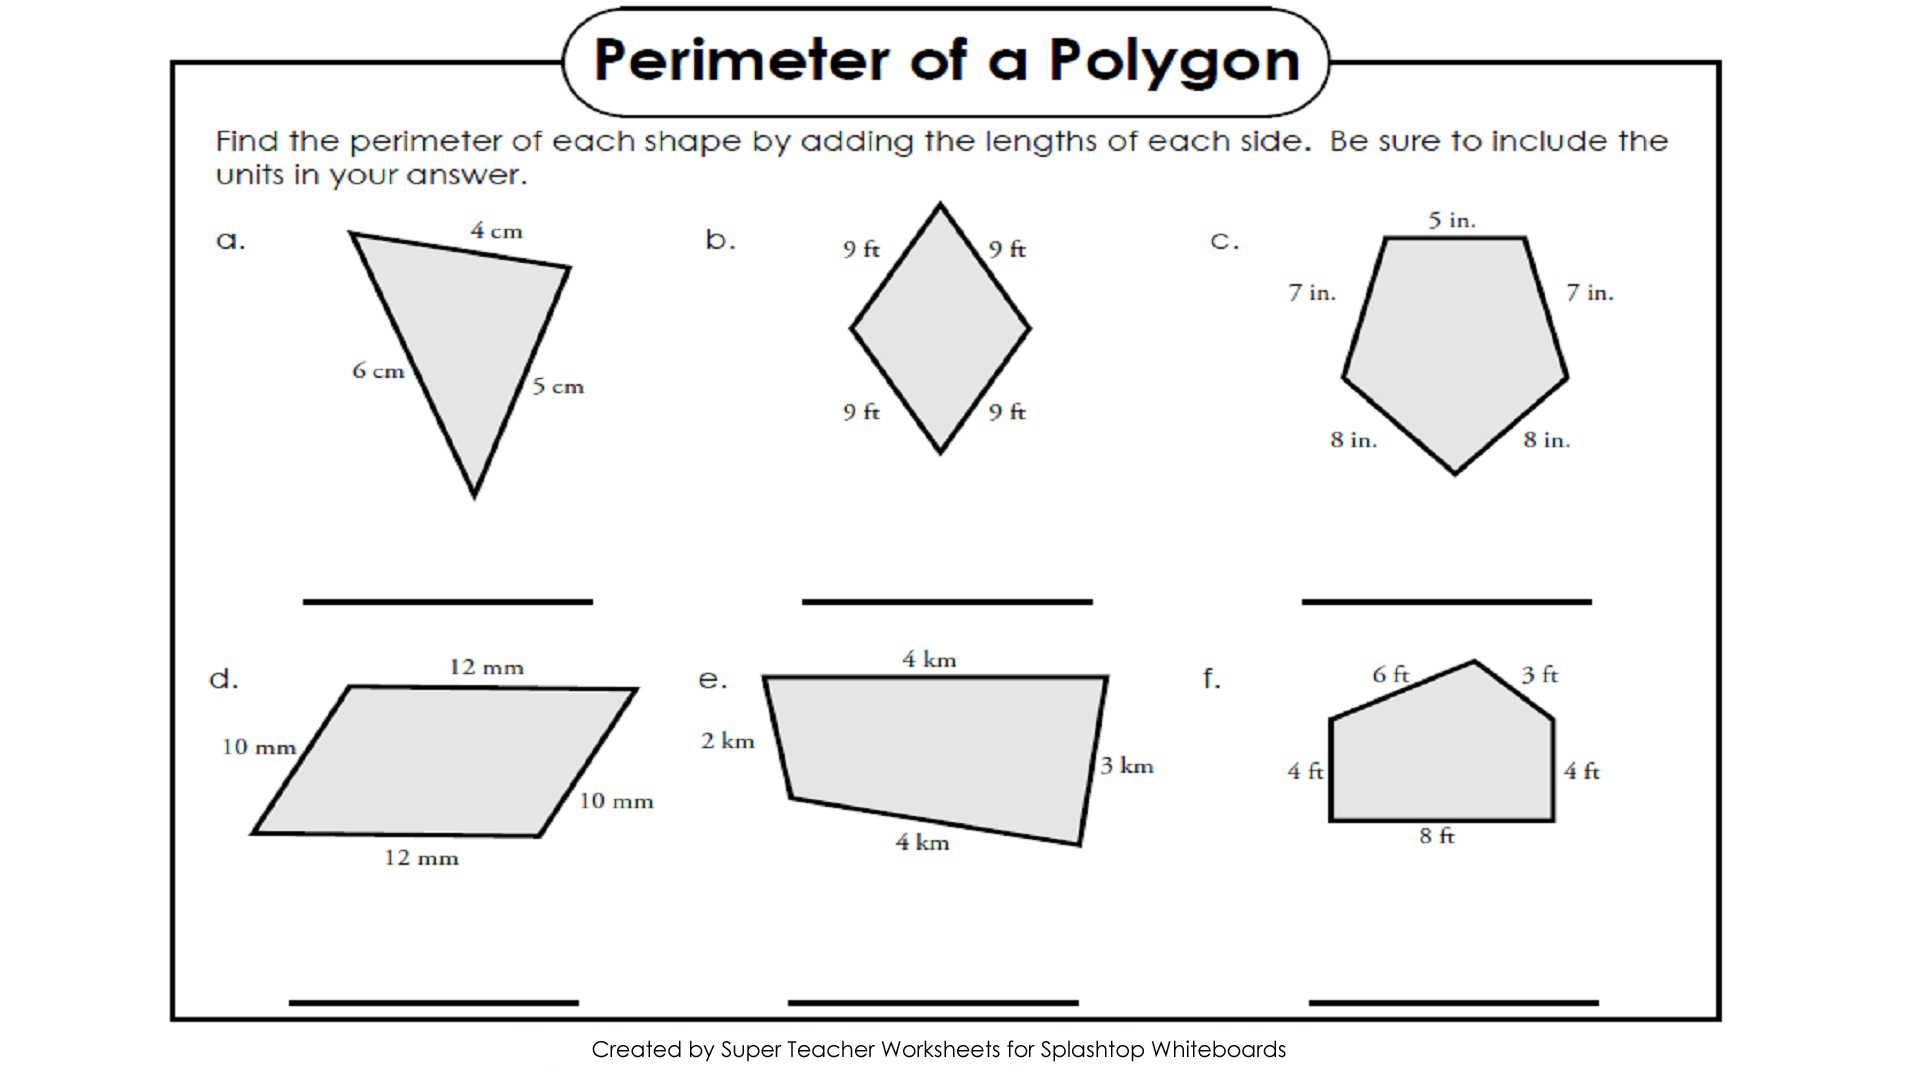 worksheet Polygon Shapes Worksheet perimeter of irregular polygons worksheet abitlikethis find the perimeters polygon shapes